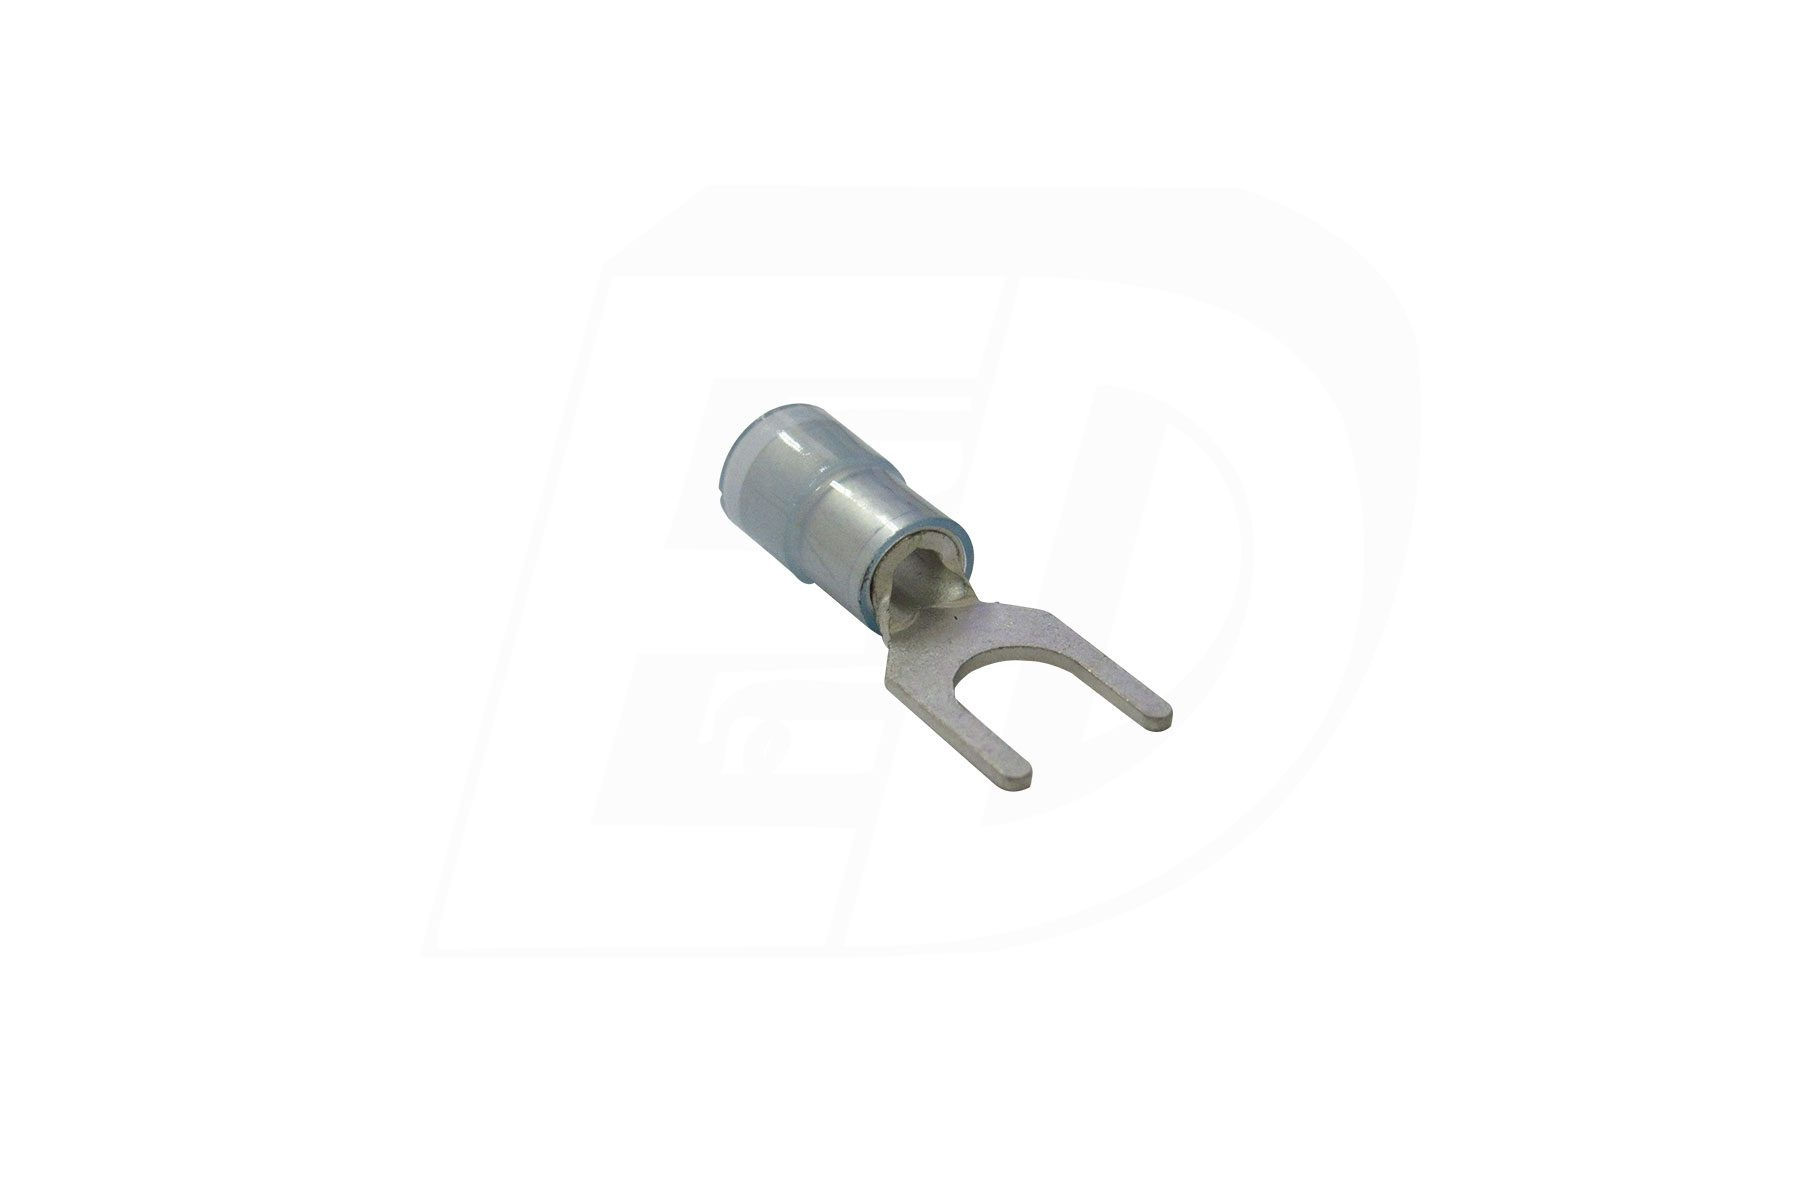 Nylon Insulated Spade Terminal with Tin Copper Sleeve 16 - 14 AWG